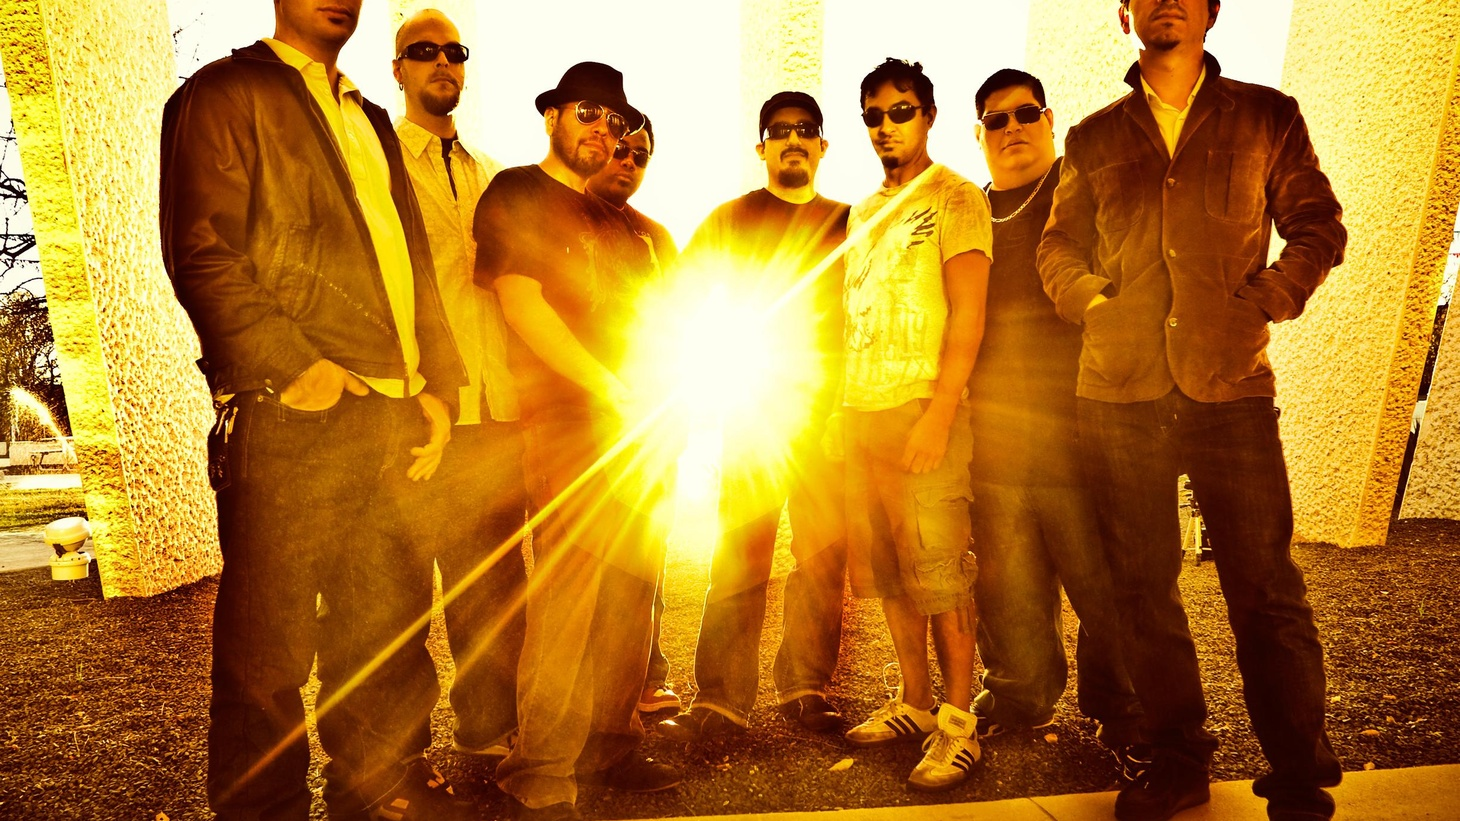 Austin's eight-piece Latin funk ensemble Brownout, an off-shoot of the Grammy-nominated Grupo Fantasma, create timeless grooves on their new CD, Aguilas and Cobras...